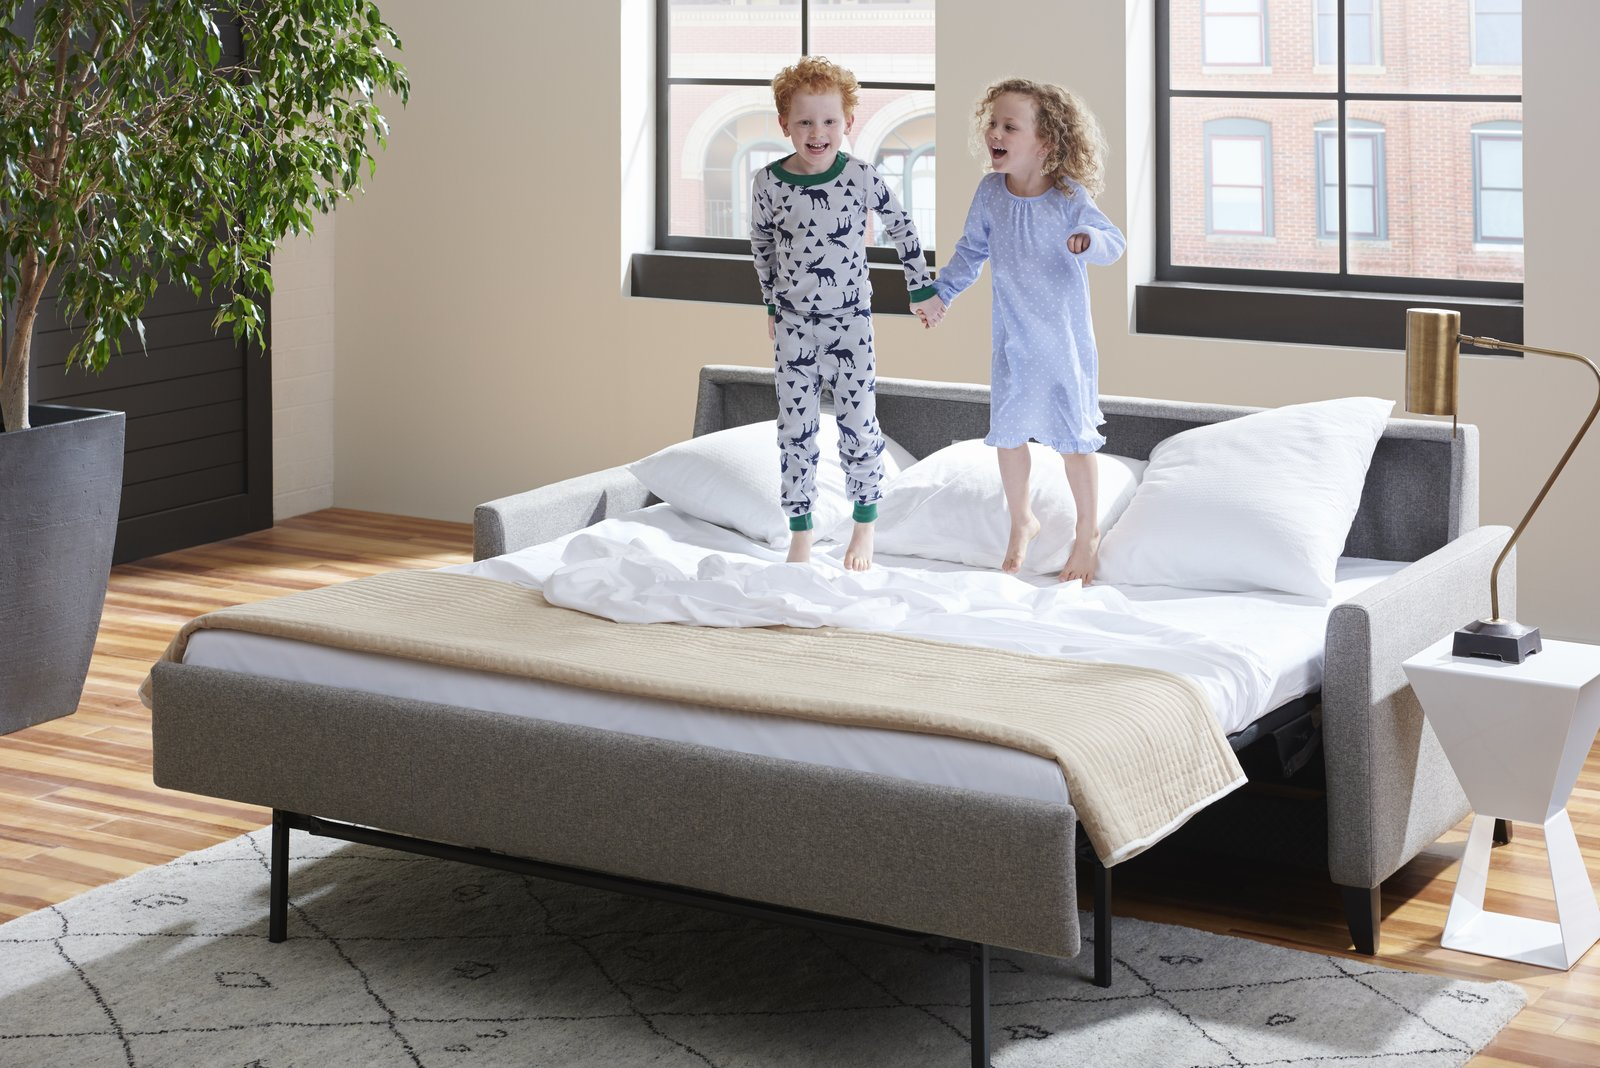 The Comfort Sleeper® is available in 15 different styles and an almost endless number of configurations, including sectionals. Choose from seven mattress sizes ranging from cot to king, three premium mattress options, and hundreds of upholstery selections including leather and performance fabrics by Crypton®, Sunbrella®, and Ultrasude®. The Hannah Comfort Sleeper®, pictured above, boasts a soft, tailored look.  Photo 2 of 7 in American Leather Breaks the Mold of Custom, High-End Furniture